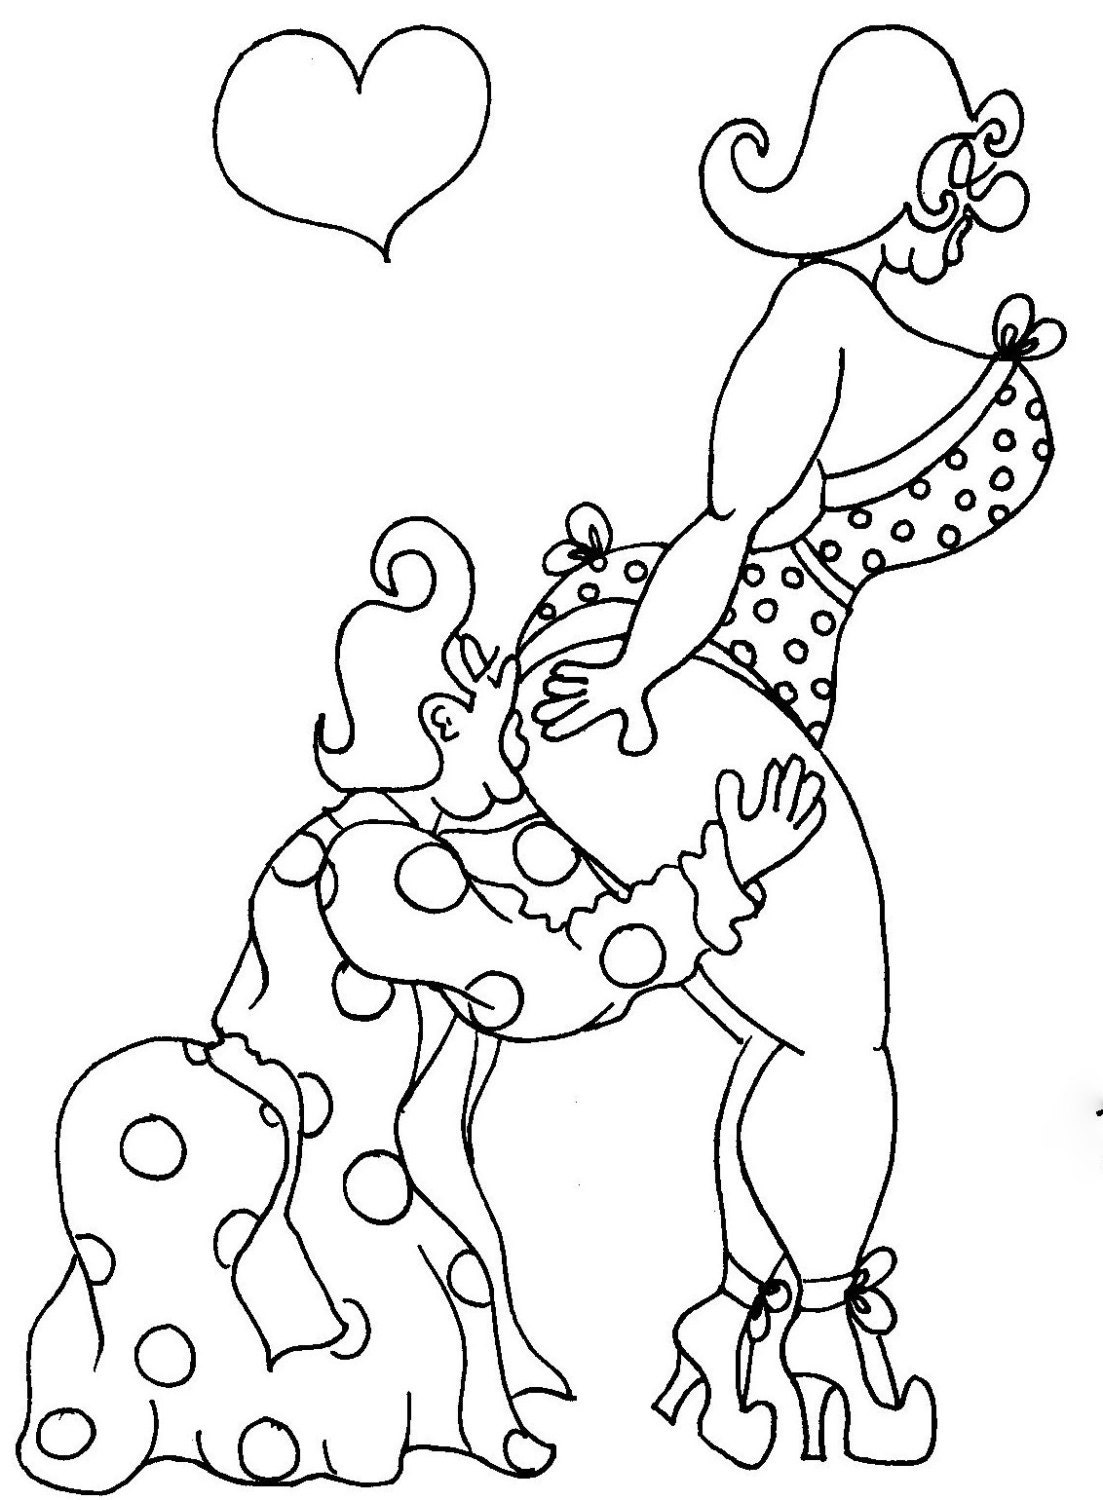 free adult cartoon coloring pages - photo#14